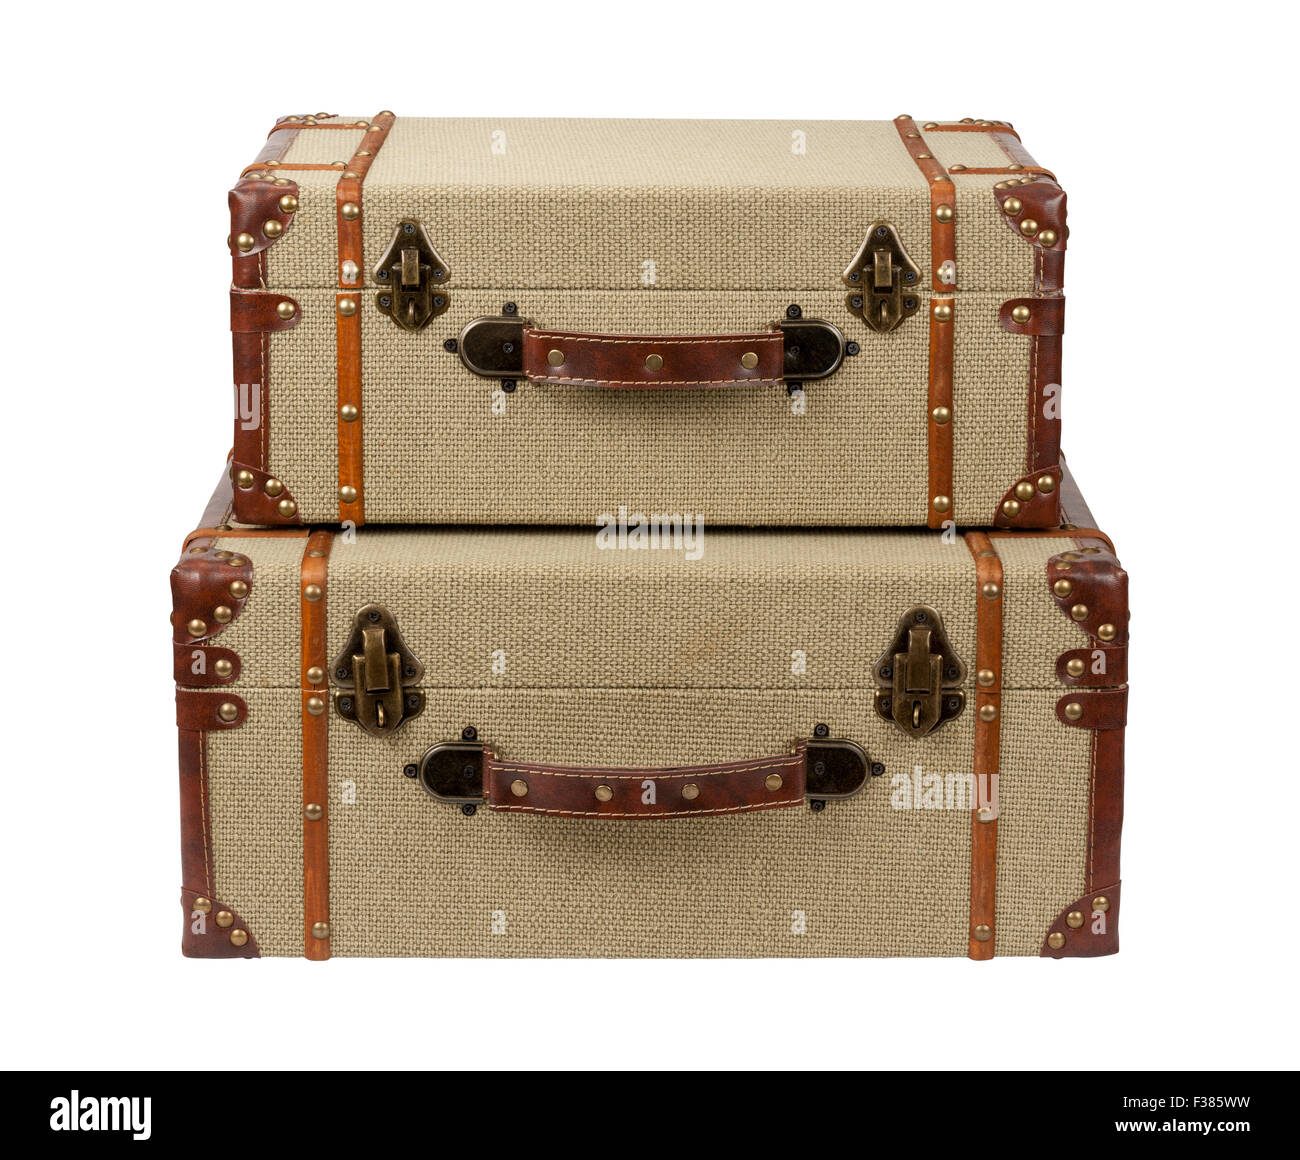 Stacked Deco Wood Burlap Suitcases - Stock Image